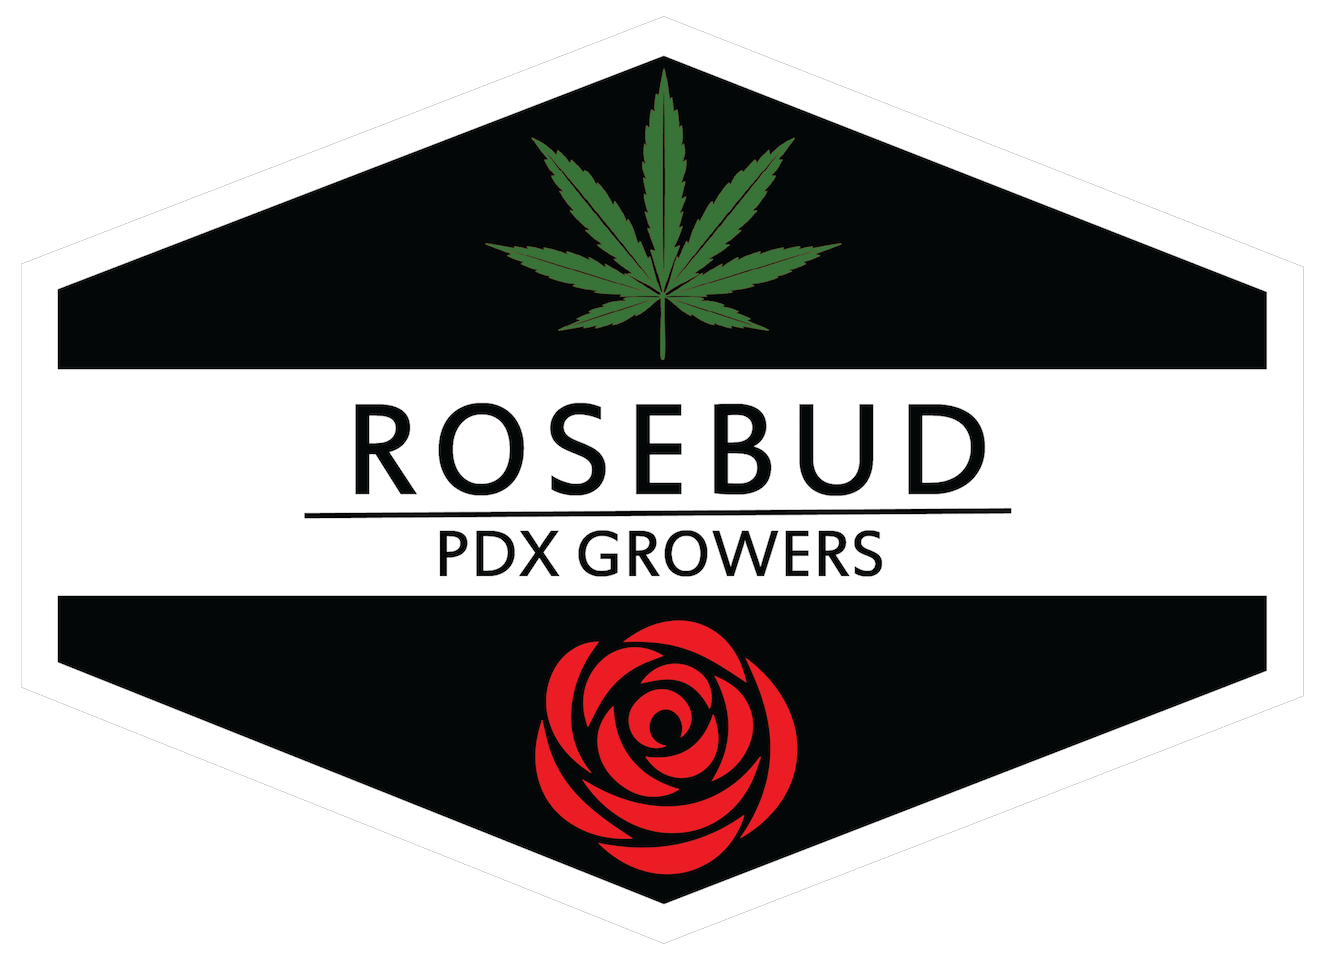 Rosebud Growers